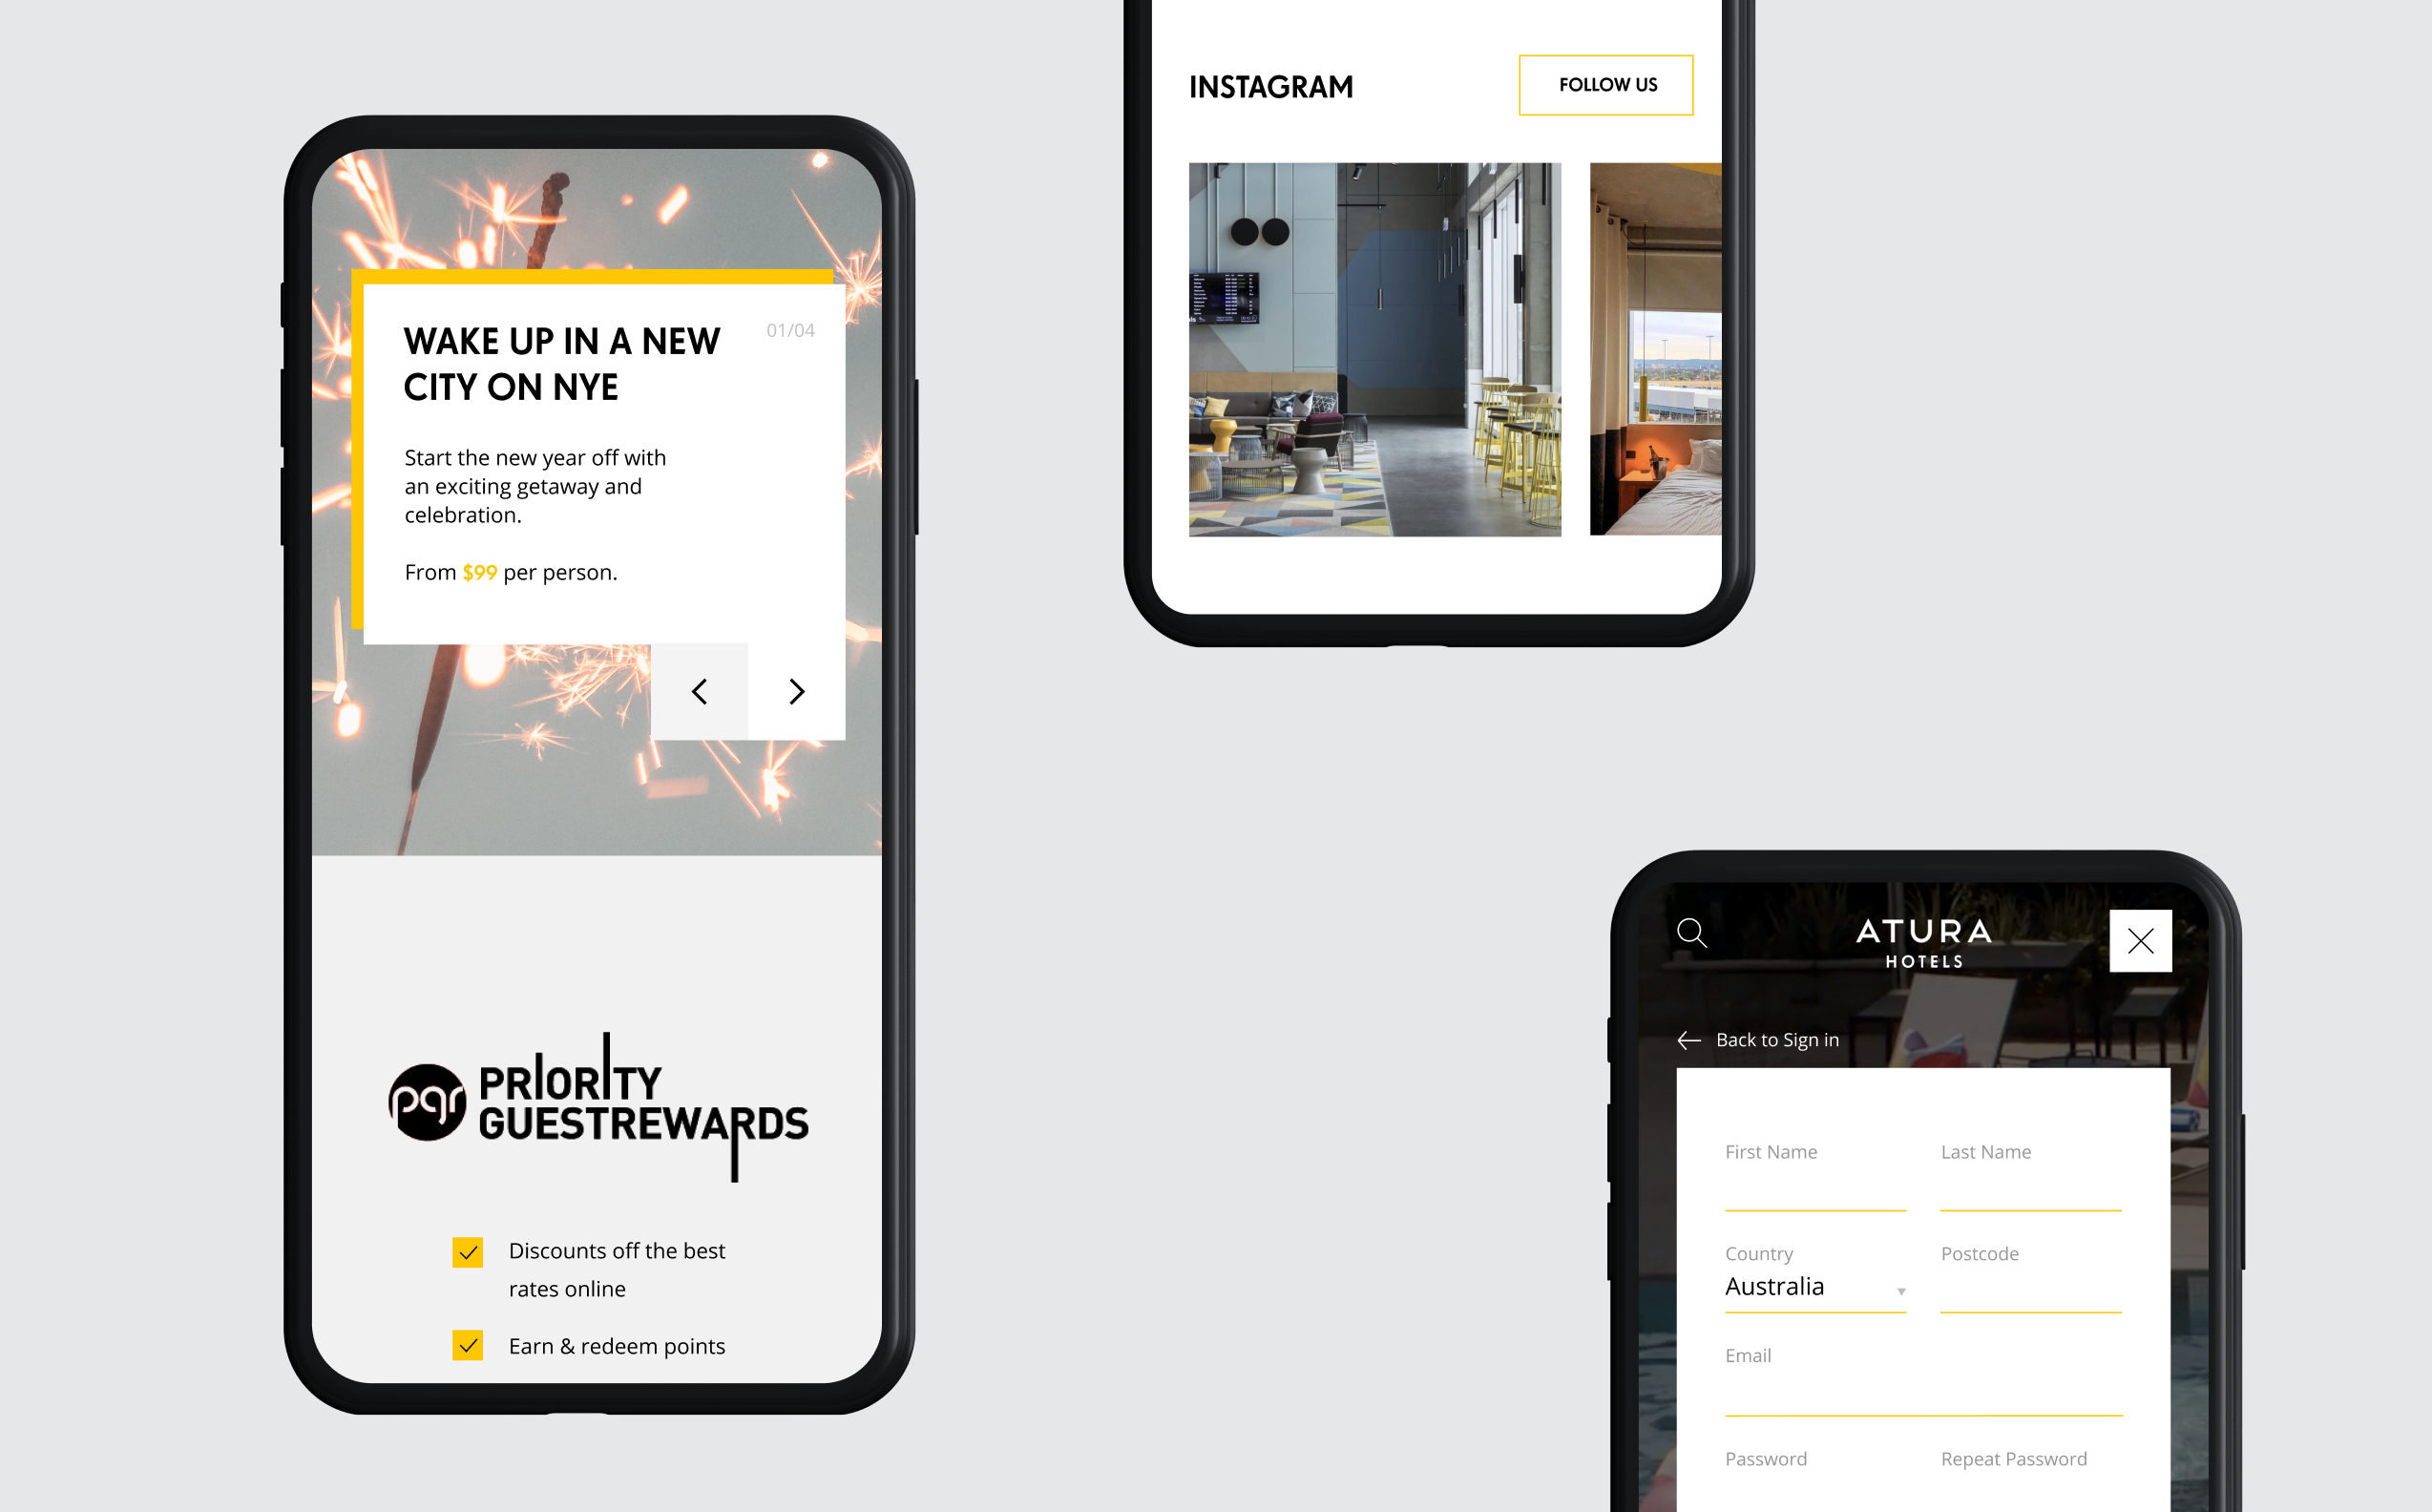 Three mobile website screens showcasing the new EVENT Atura design system